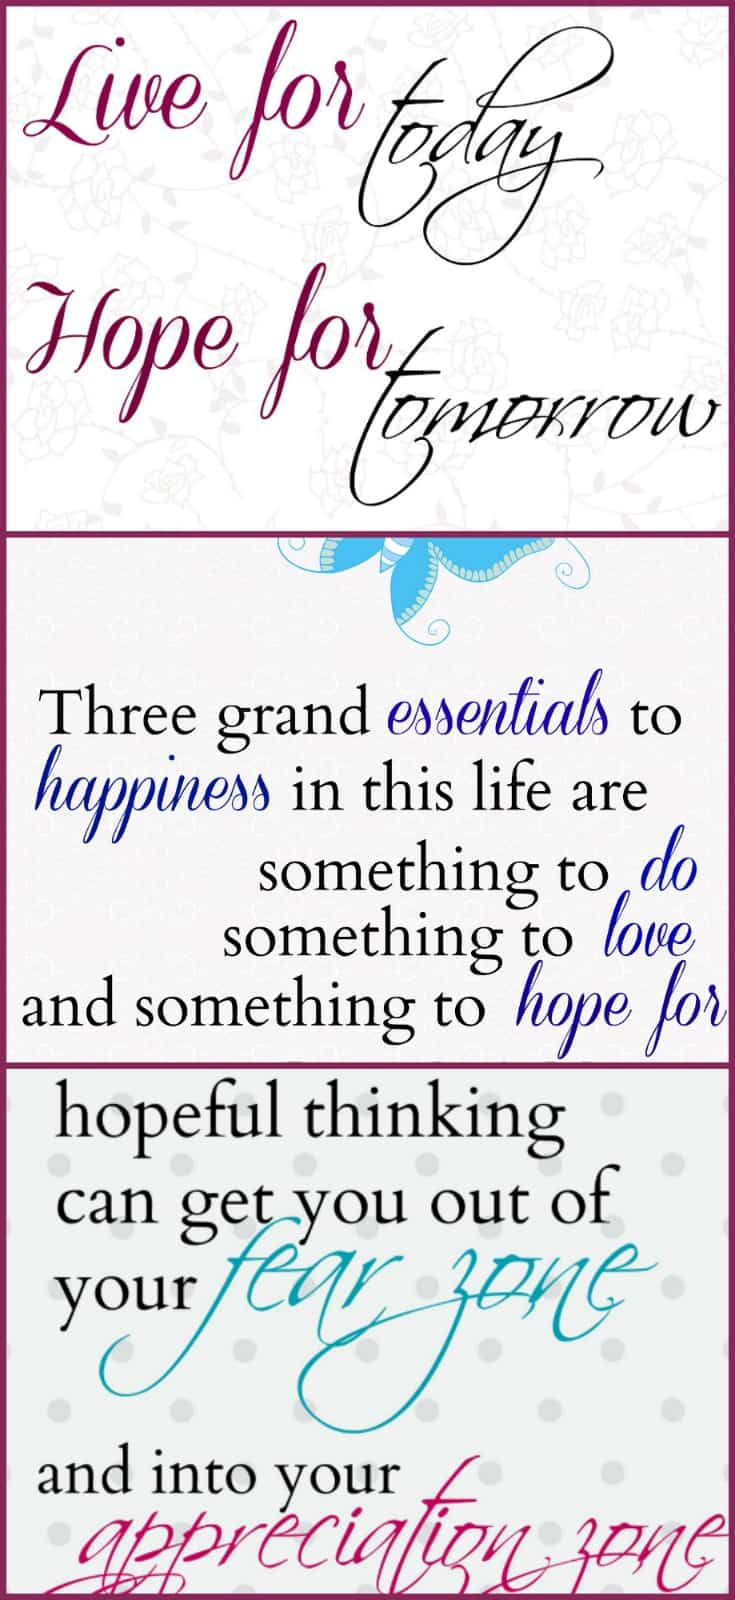 Are you in need of a gentle reminder to always have hope? Print out one of these free printable quotes.